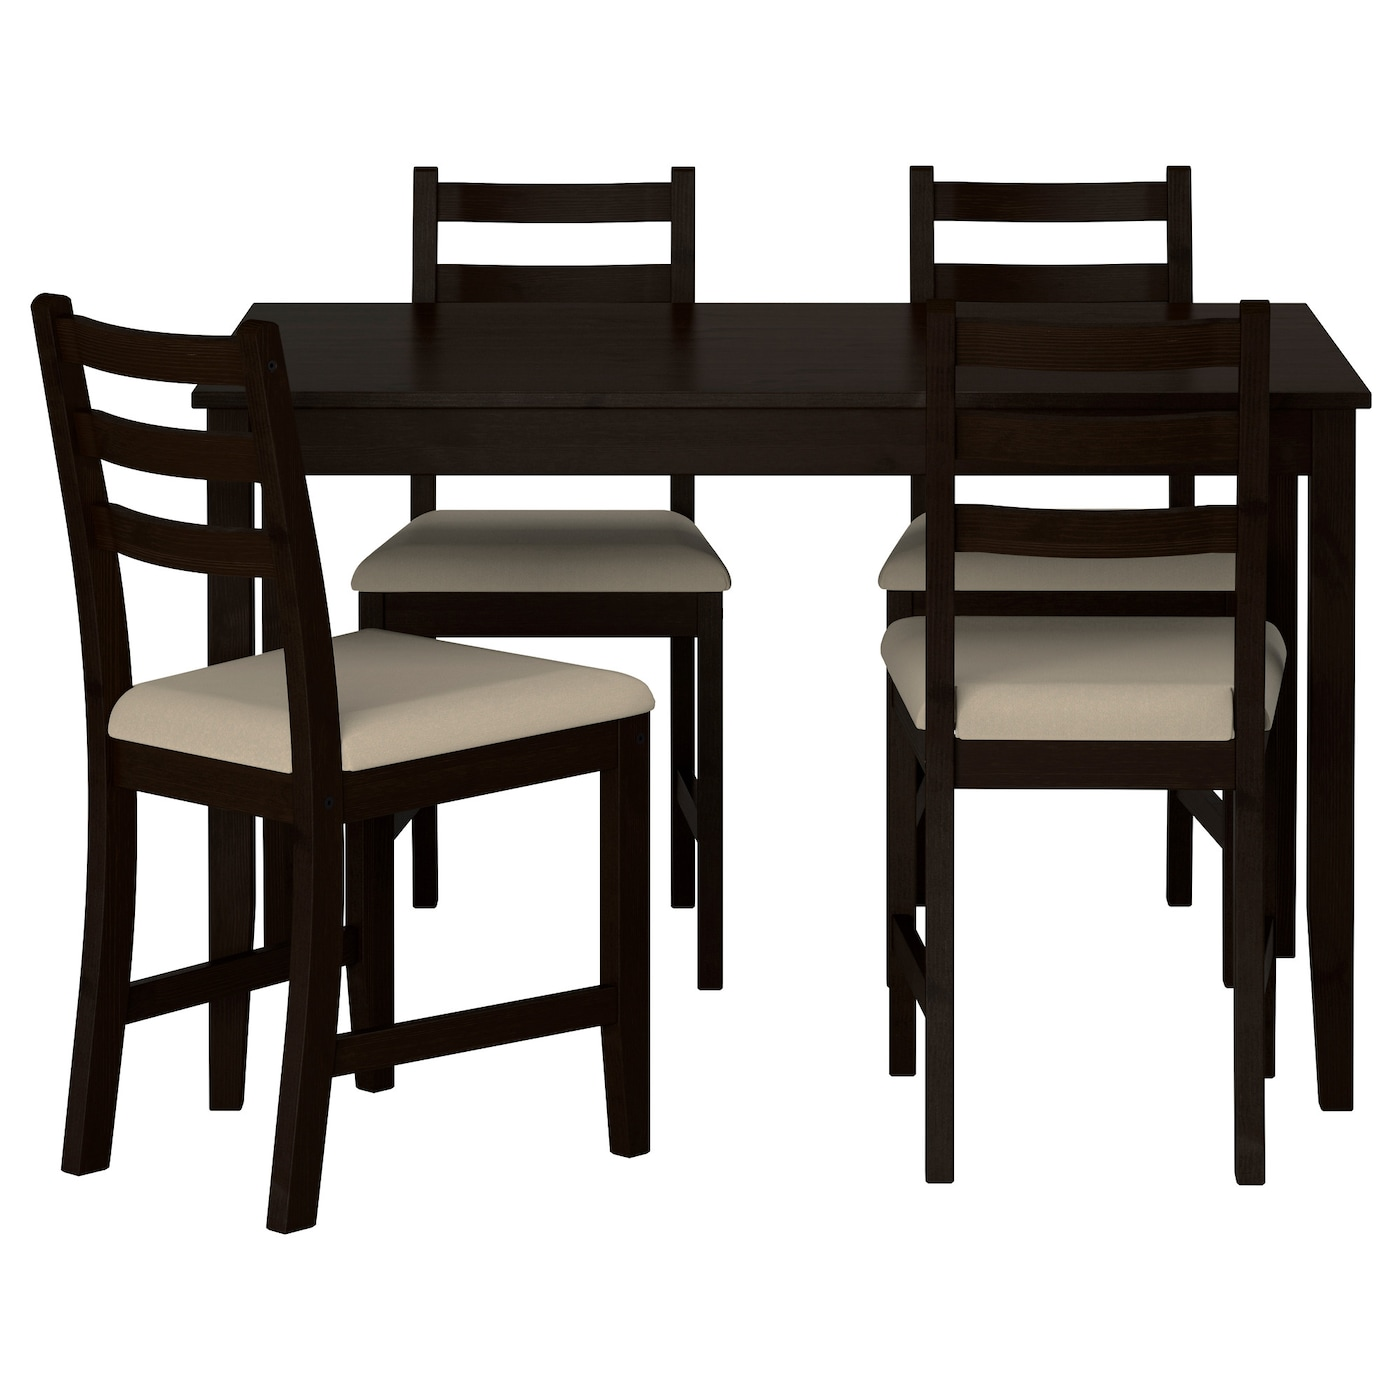 lerhamn table and 4 chairs black brown ramna beige 118 x 74 cm ikea. Black Bedroom Furniture Sets. Home Design Ideas